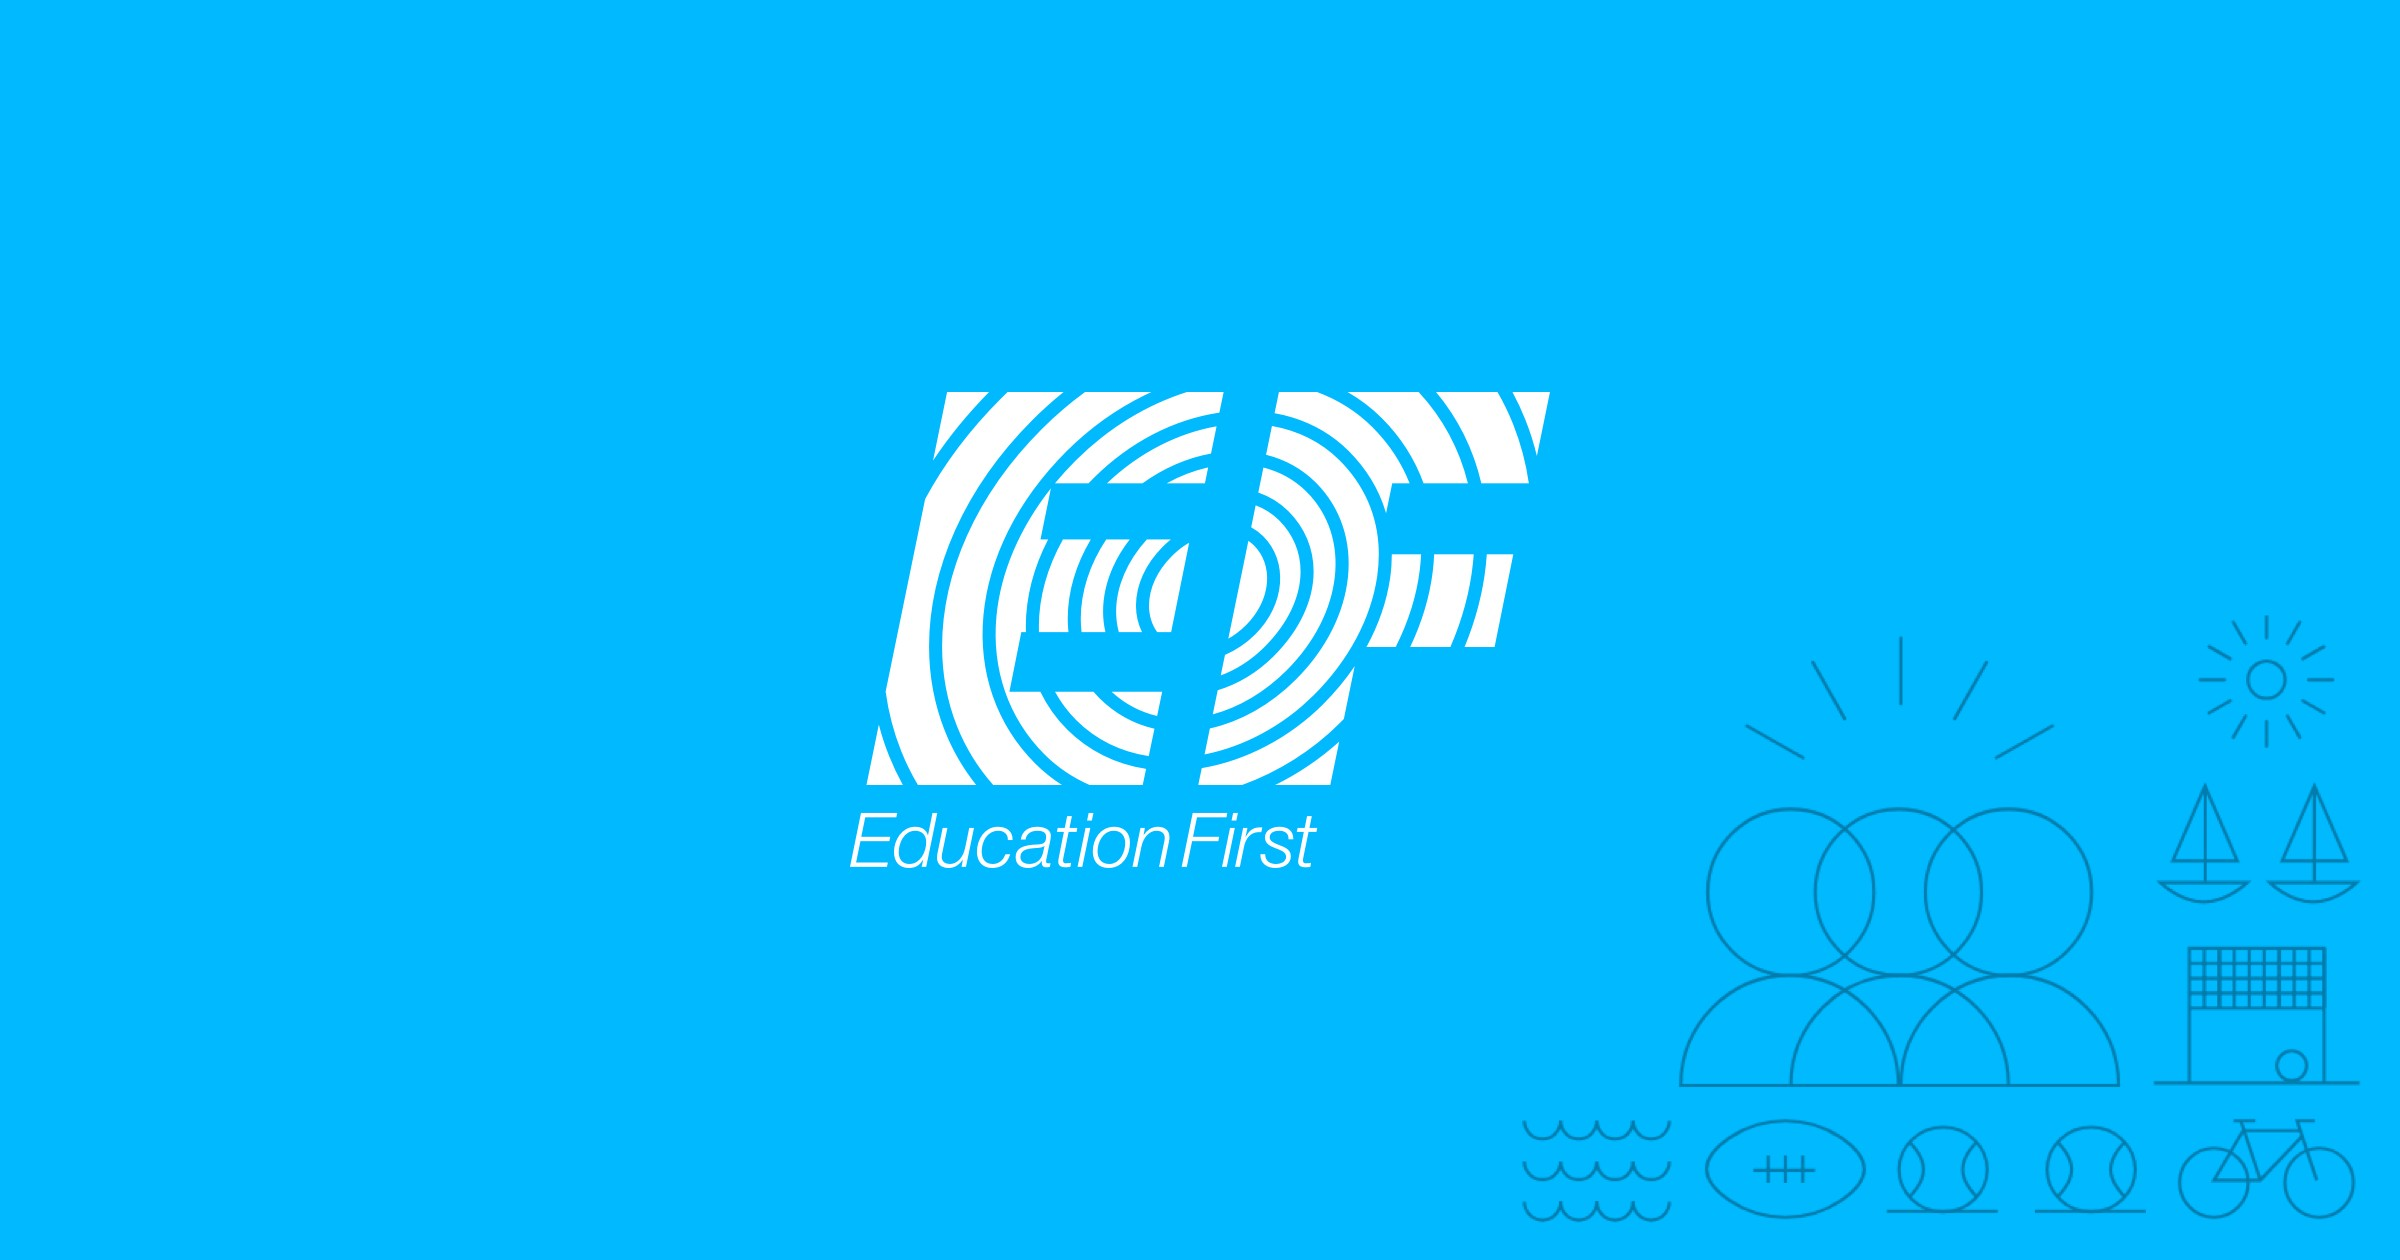 EF Education First Study Abroad Cultural Exchange and Work Study Opportunities Worldwide